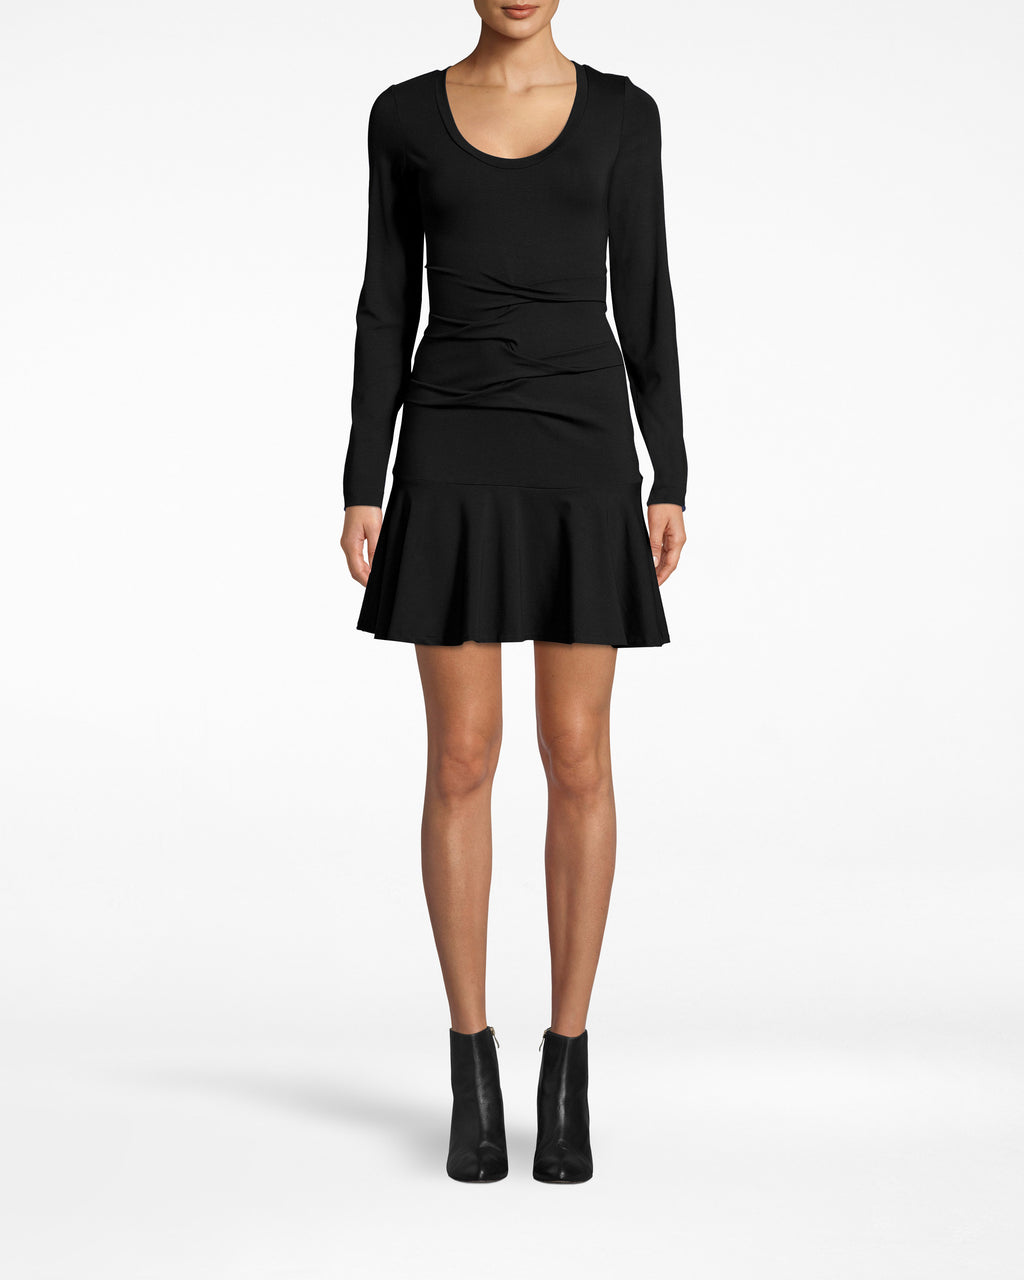 BF20069 - JERSEY TIDAL PLEAT FLARE DRESS - dresses - short - This jersey long sleeve dress features a subtle flare at the hem, as well as slight, textured fabric gathering around the waist. Pair with heels and elevate with a leather jacket.